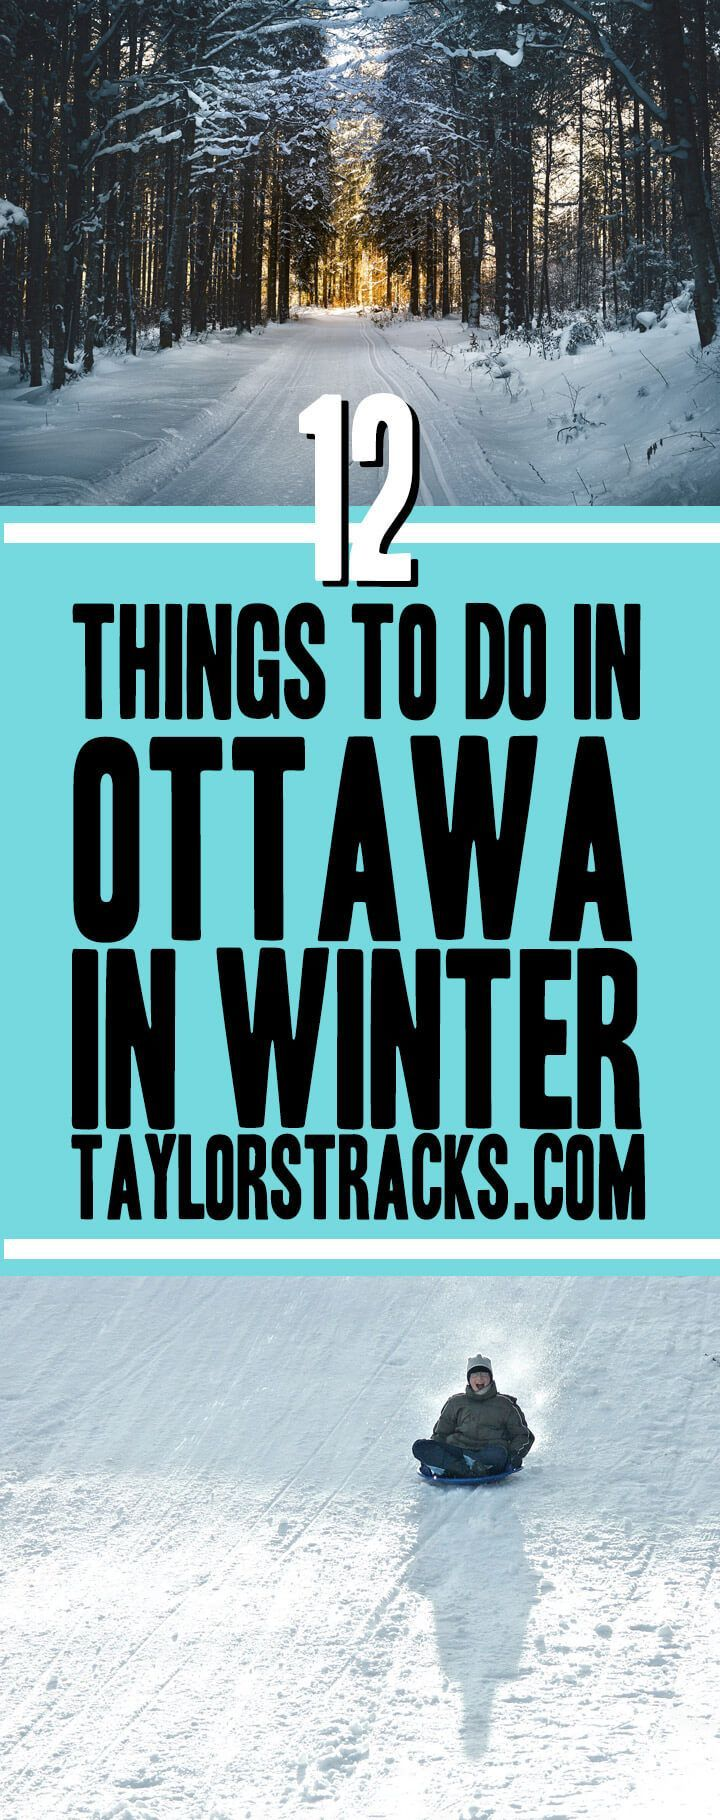 Don't miss seeing Canada's capital, Ottawa, during the most beautiful time of the year! Winter is Ottawa is amazing and has so many activities! #canada ***** Ottawa Canada | Ottawa Canada winter | Ottawa Canada things to do | Things to do in Ottawa winter